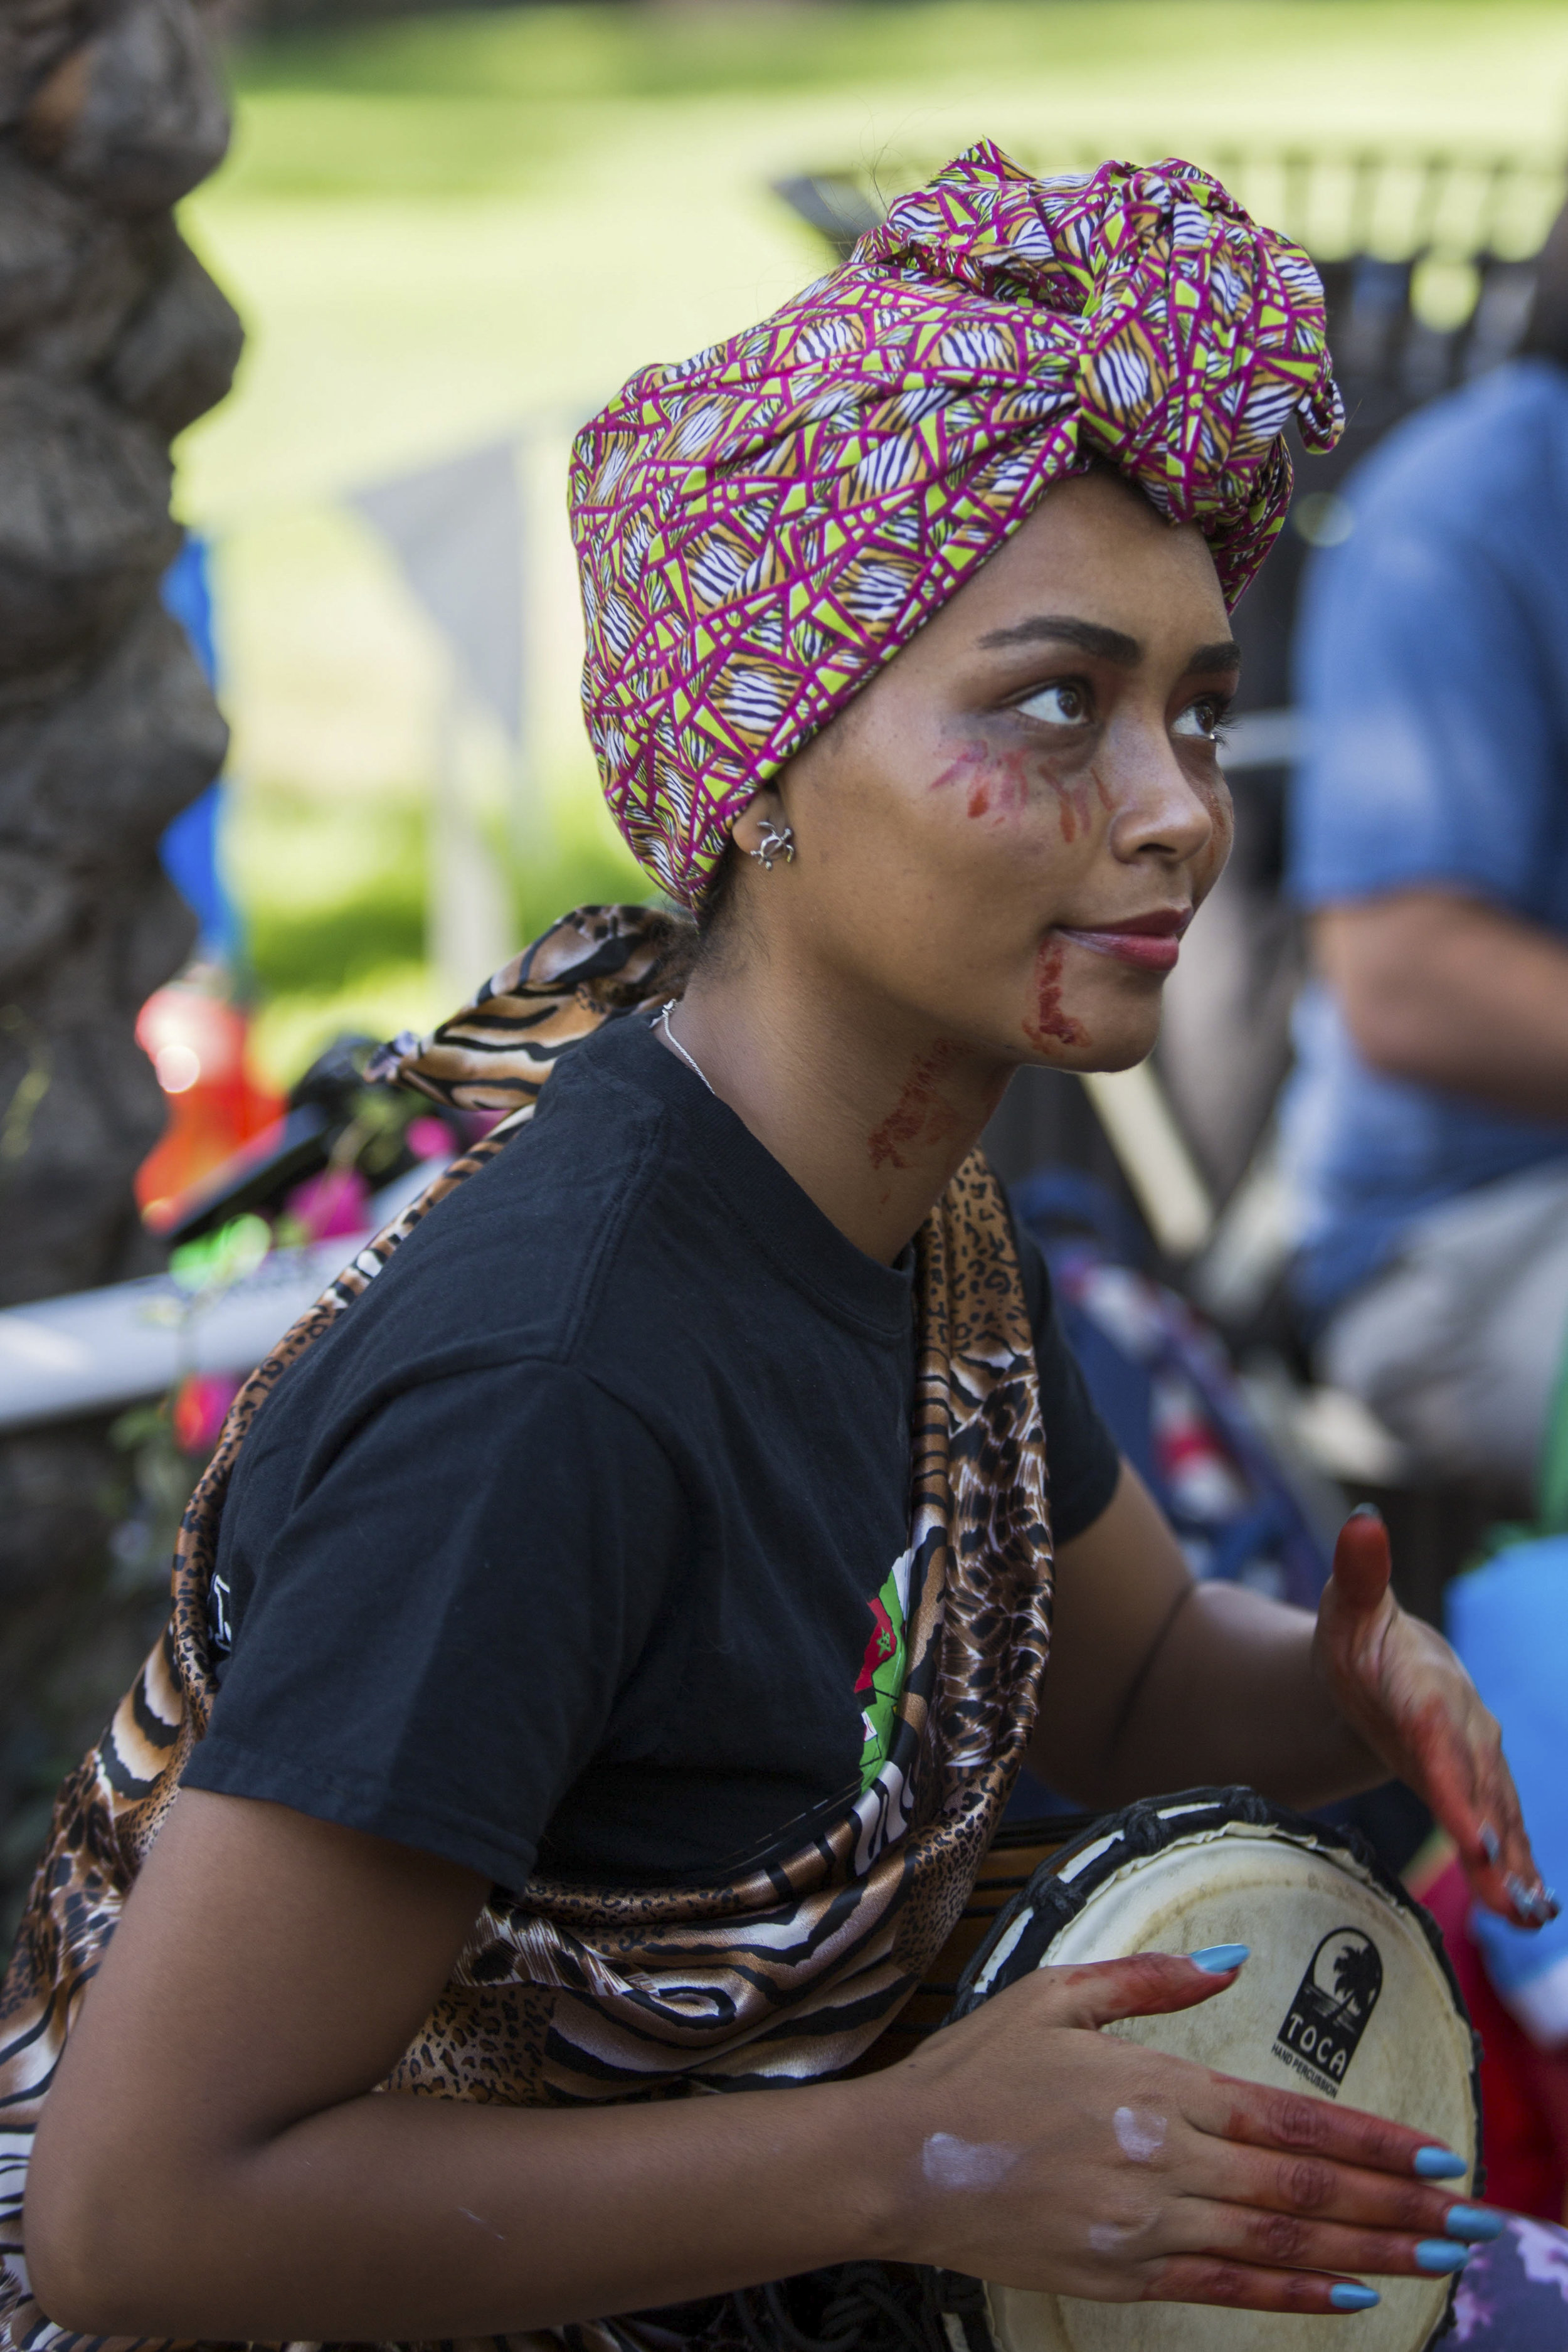 Hilsenbek-steffie Yema, member of Pan-African Student Union plays Toca drum at their club's booth during Club Row event at Santa Monica College Main Campus on Thursday, October 26th, 2017 in Santa Monica, California. (Photo by Yuki Iwamura)